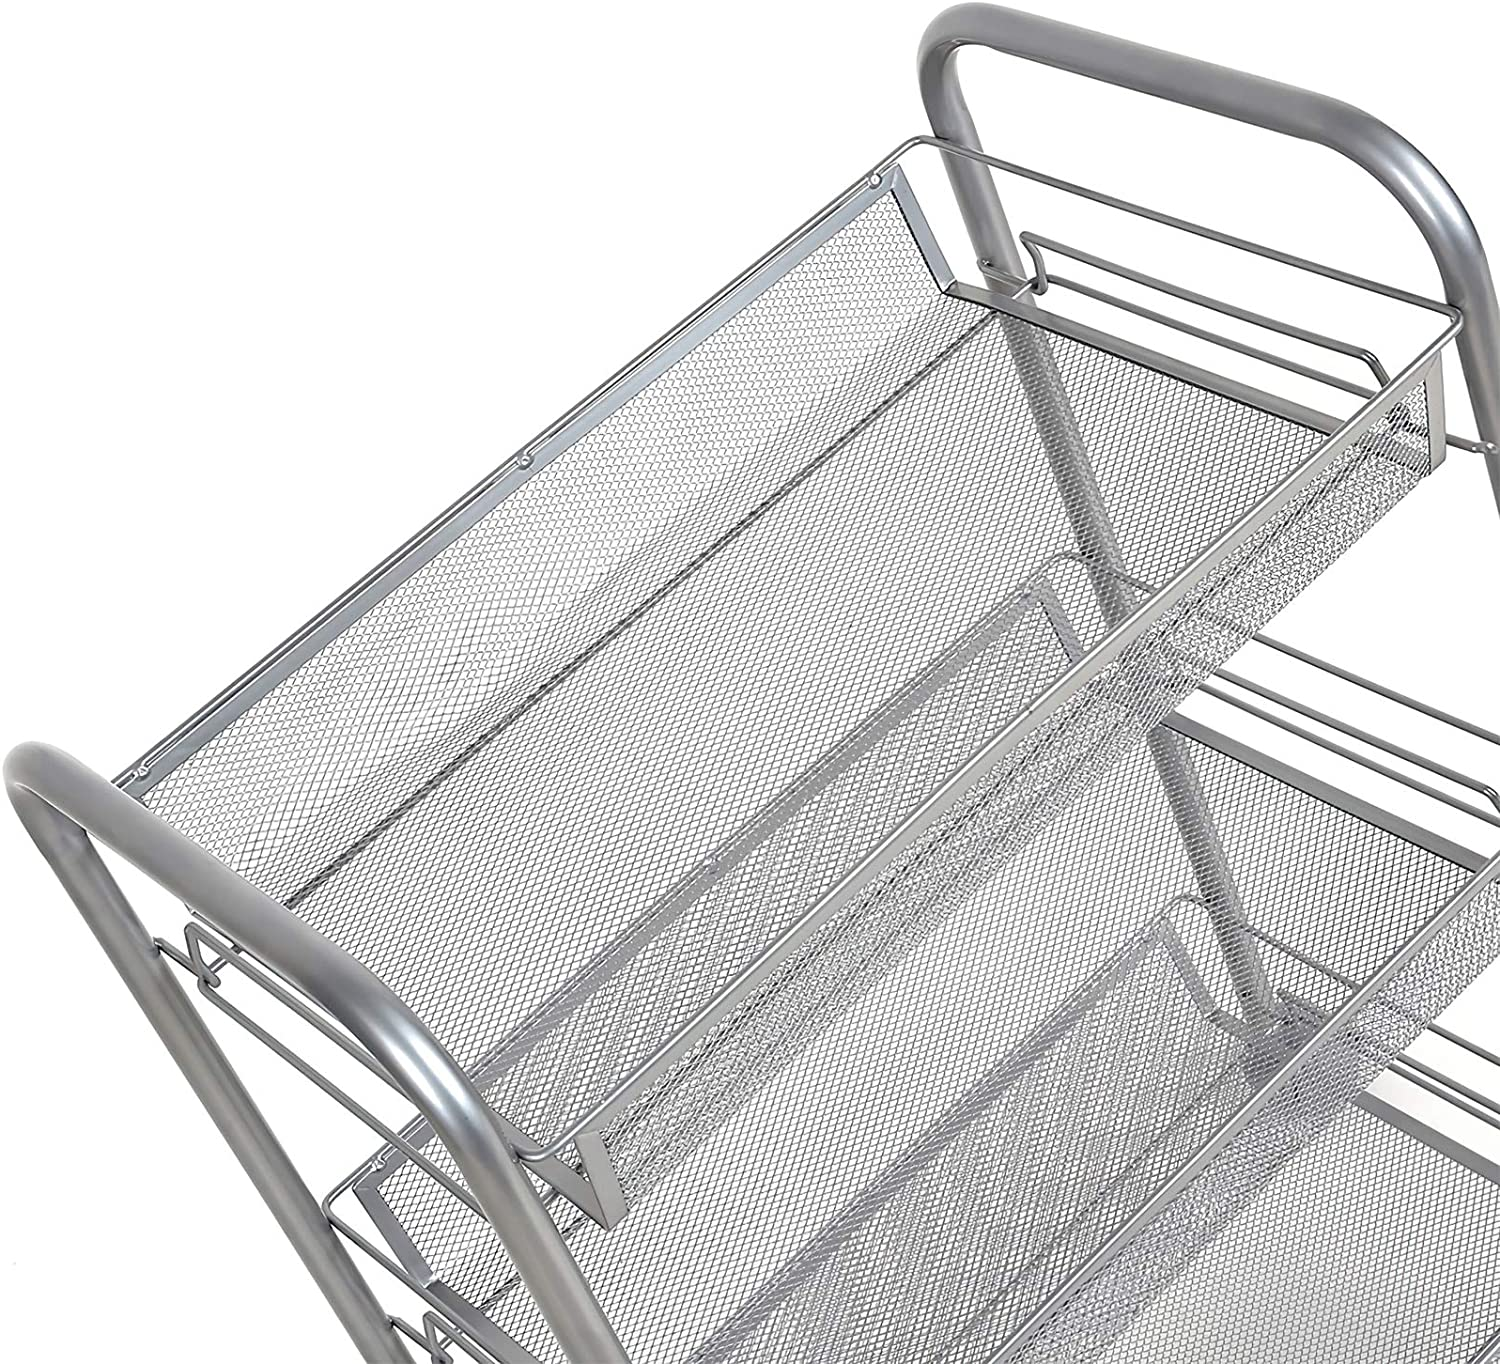 Homfa 3-Tier Mesh Wire Rolling Cart Multifunction Utility Cart Kitchen Storage Cart on Wheels, Steel Wire Basket Shelving Trolley,Easy Moving,Silver: Home & Kitchen